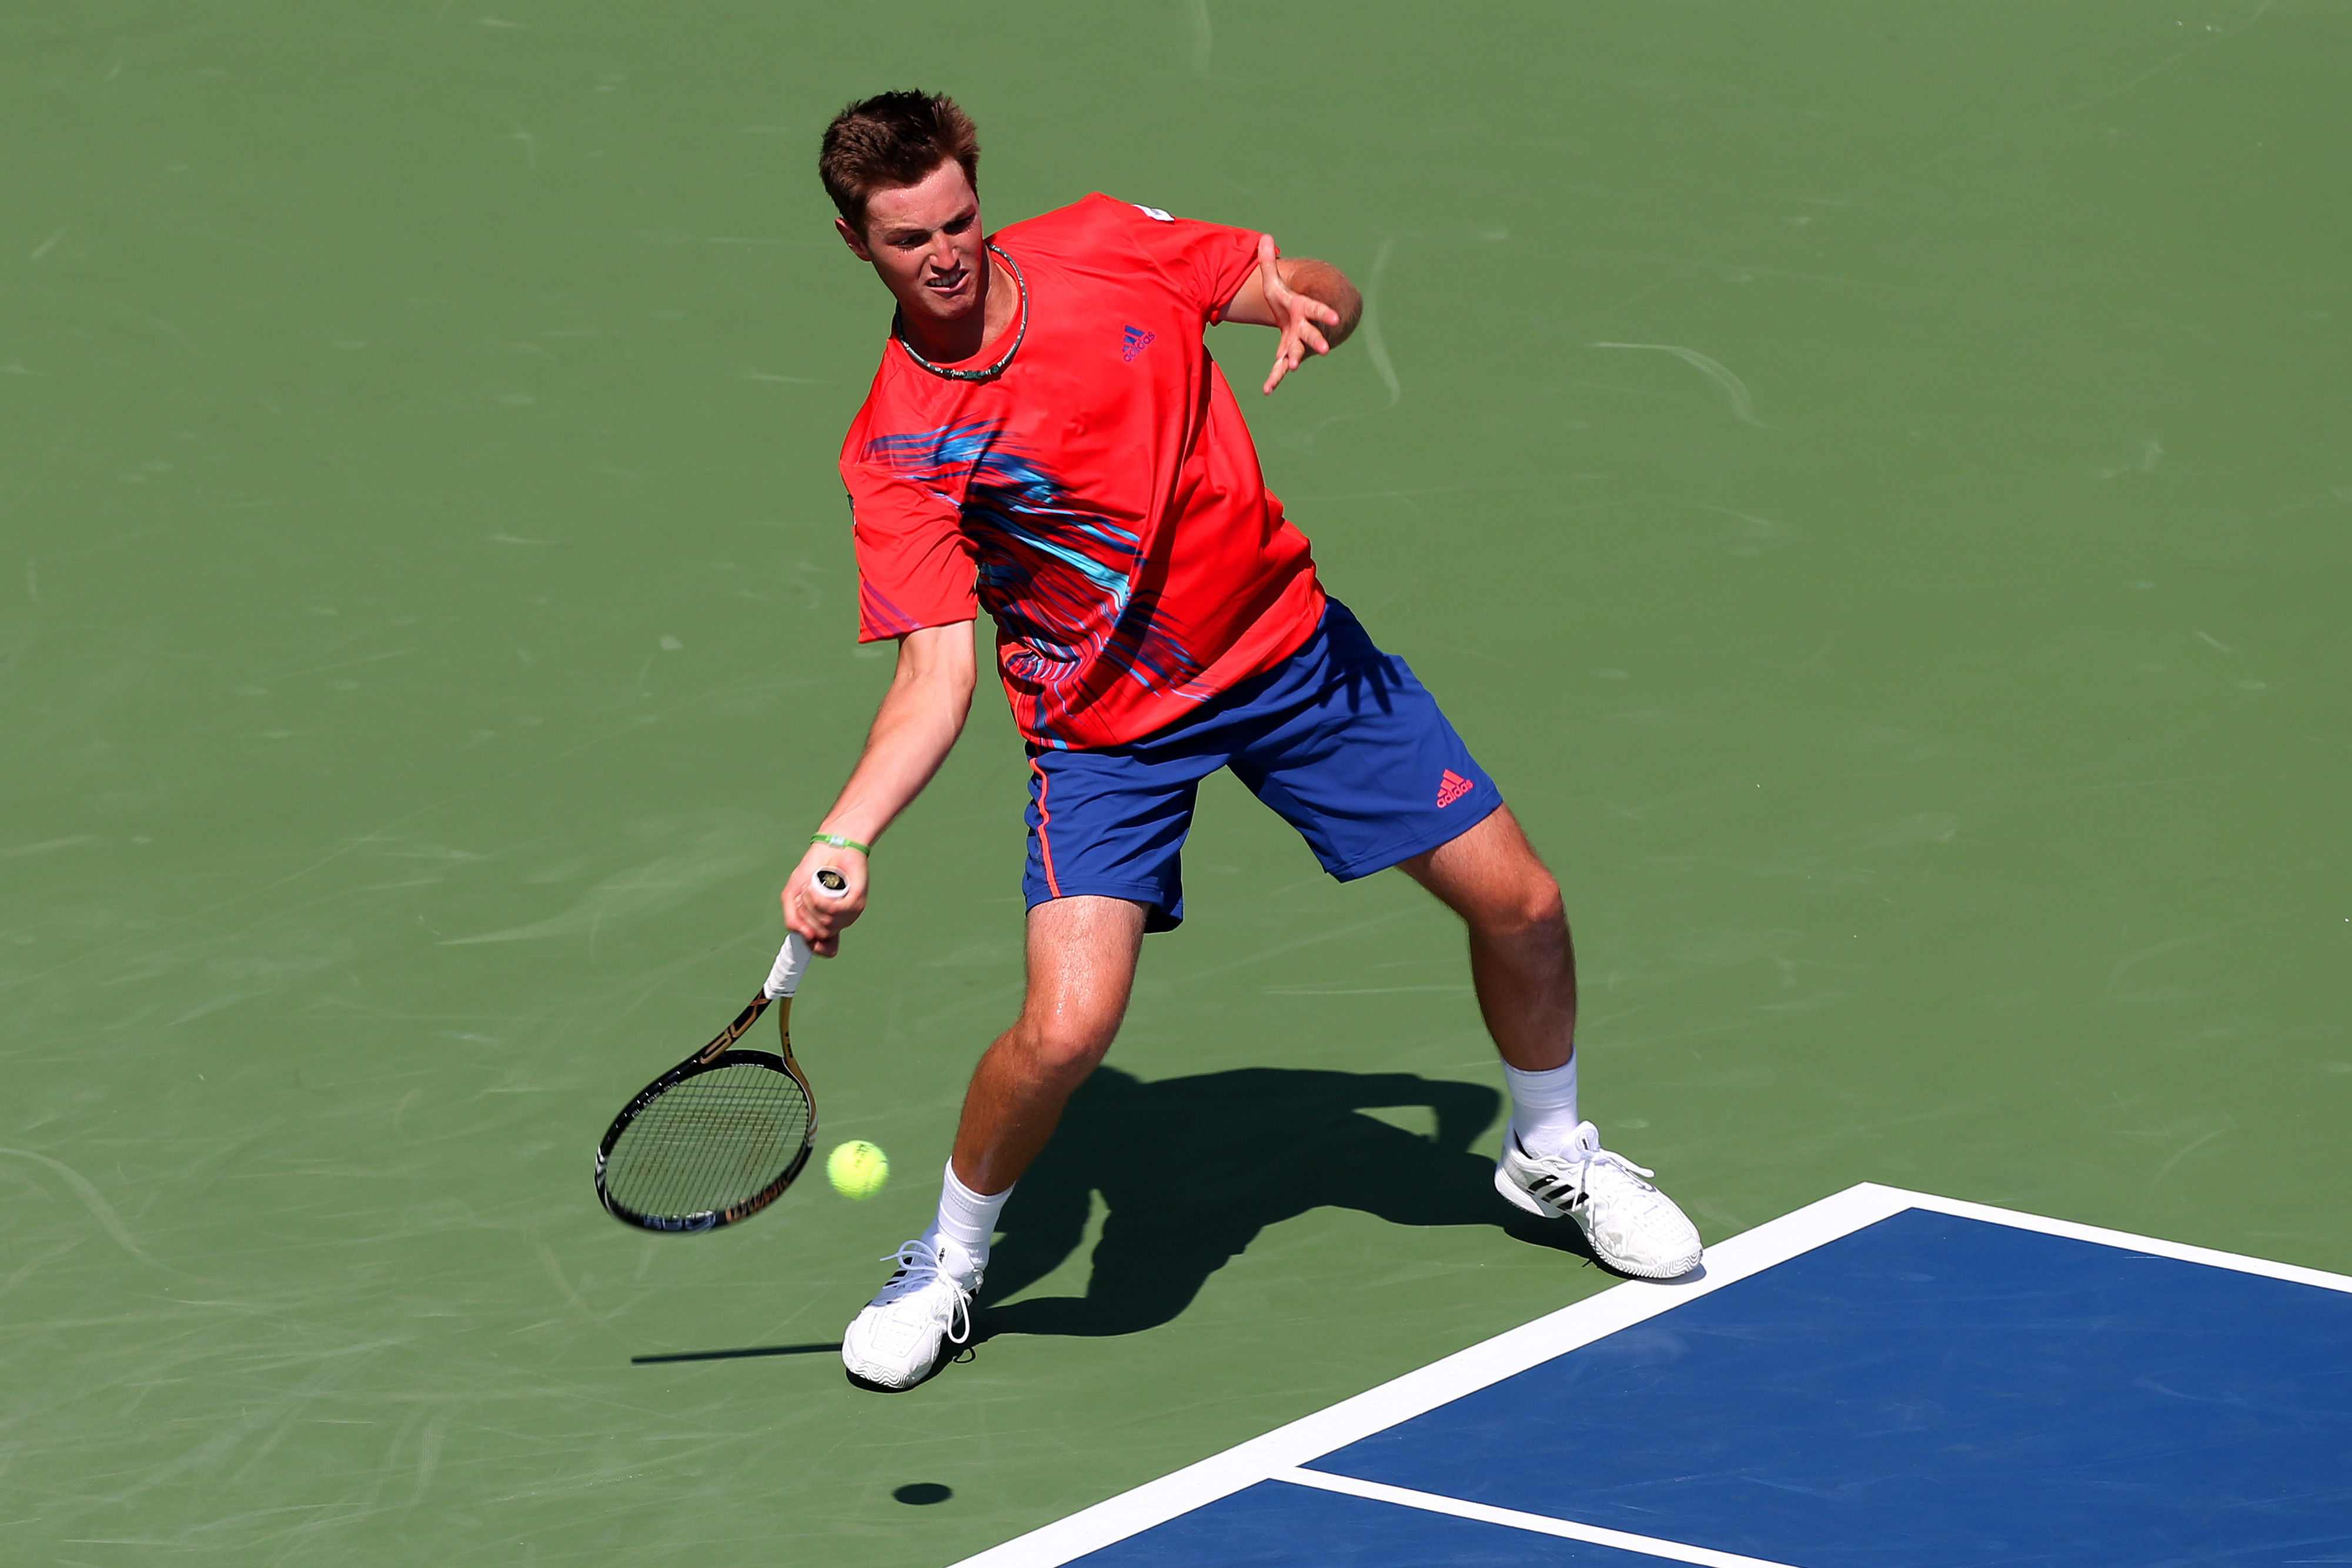 Rhyne Williams Strokes a Forehand at the U.S. Open